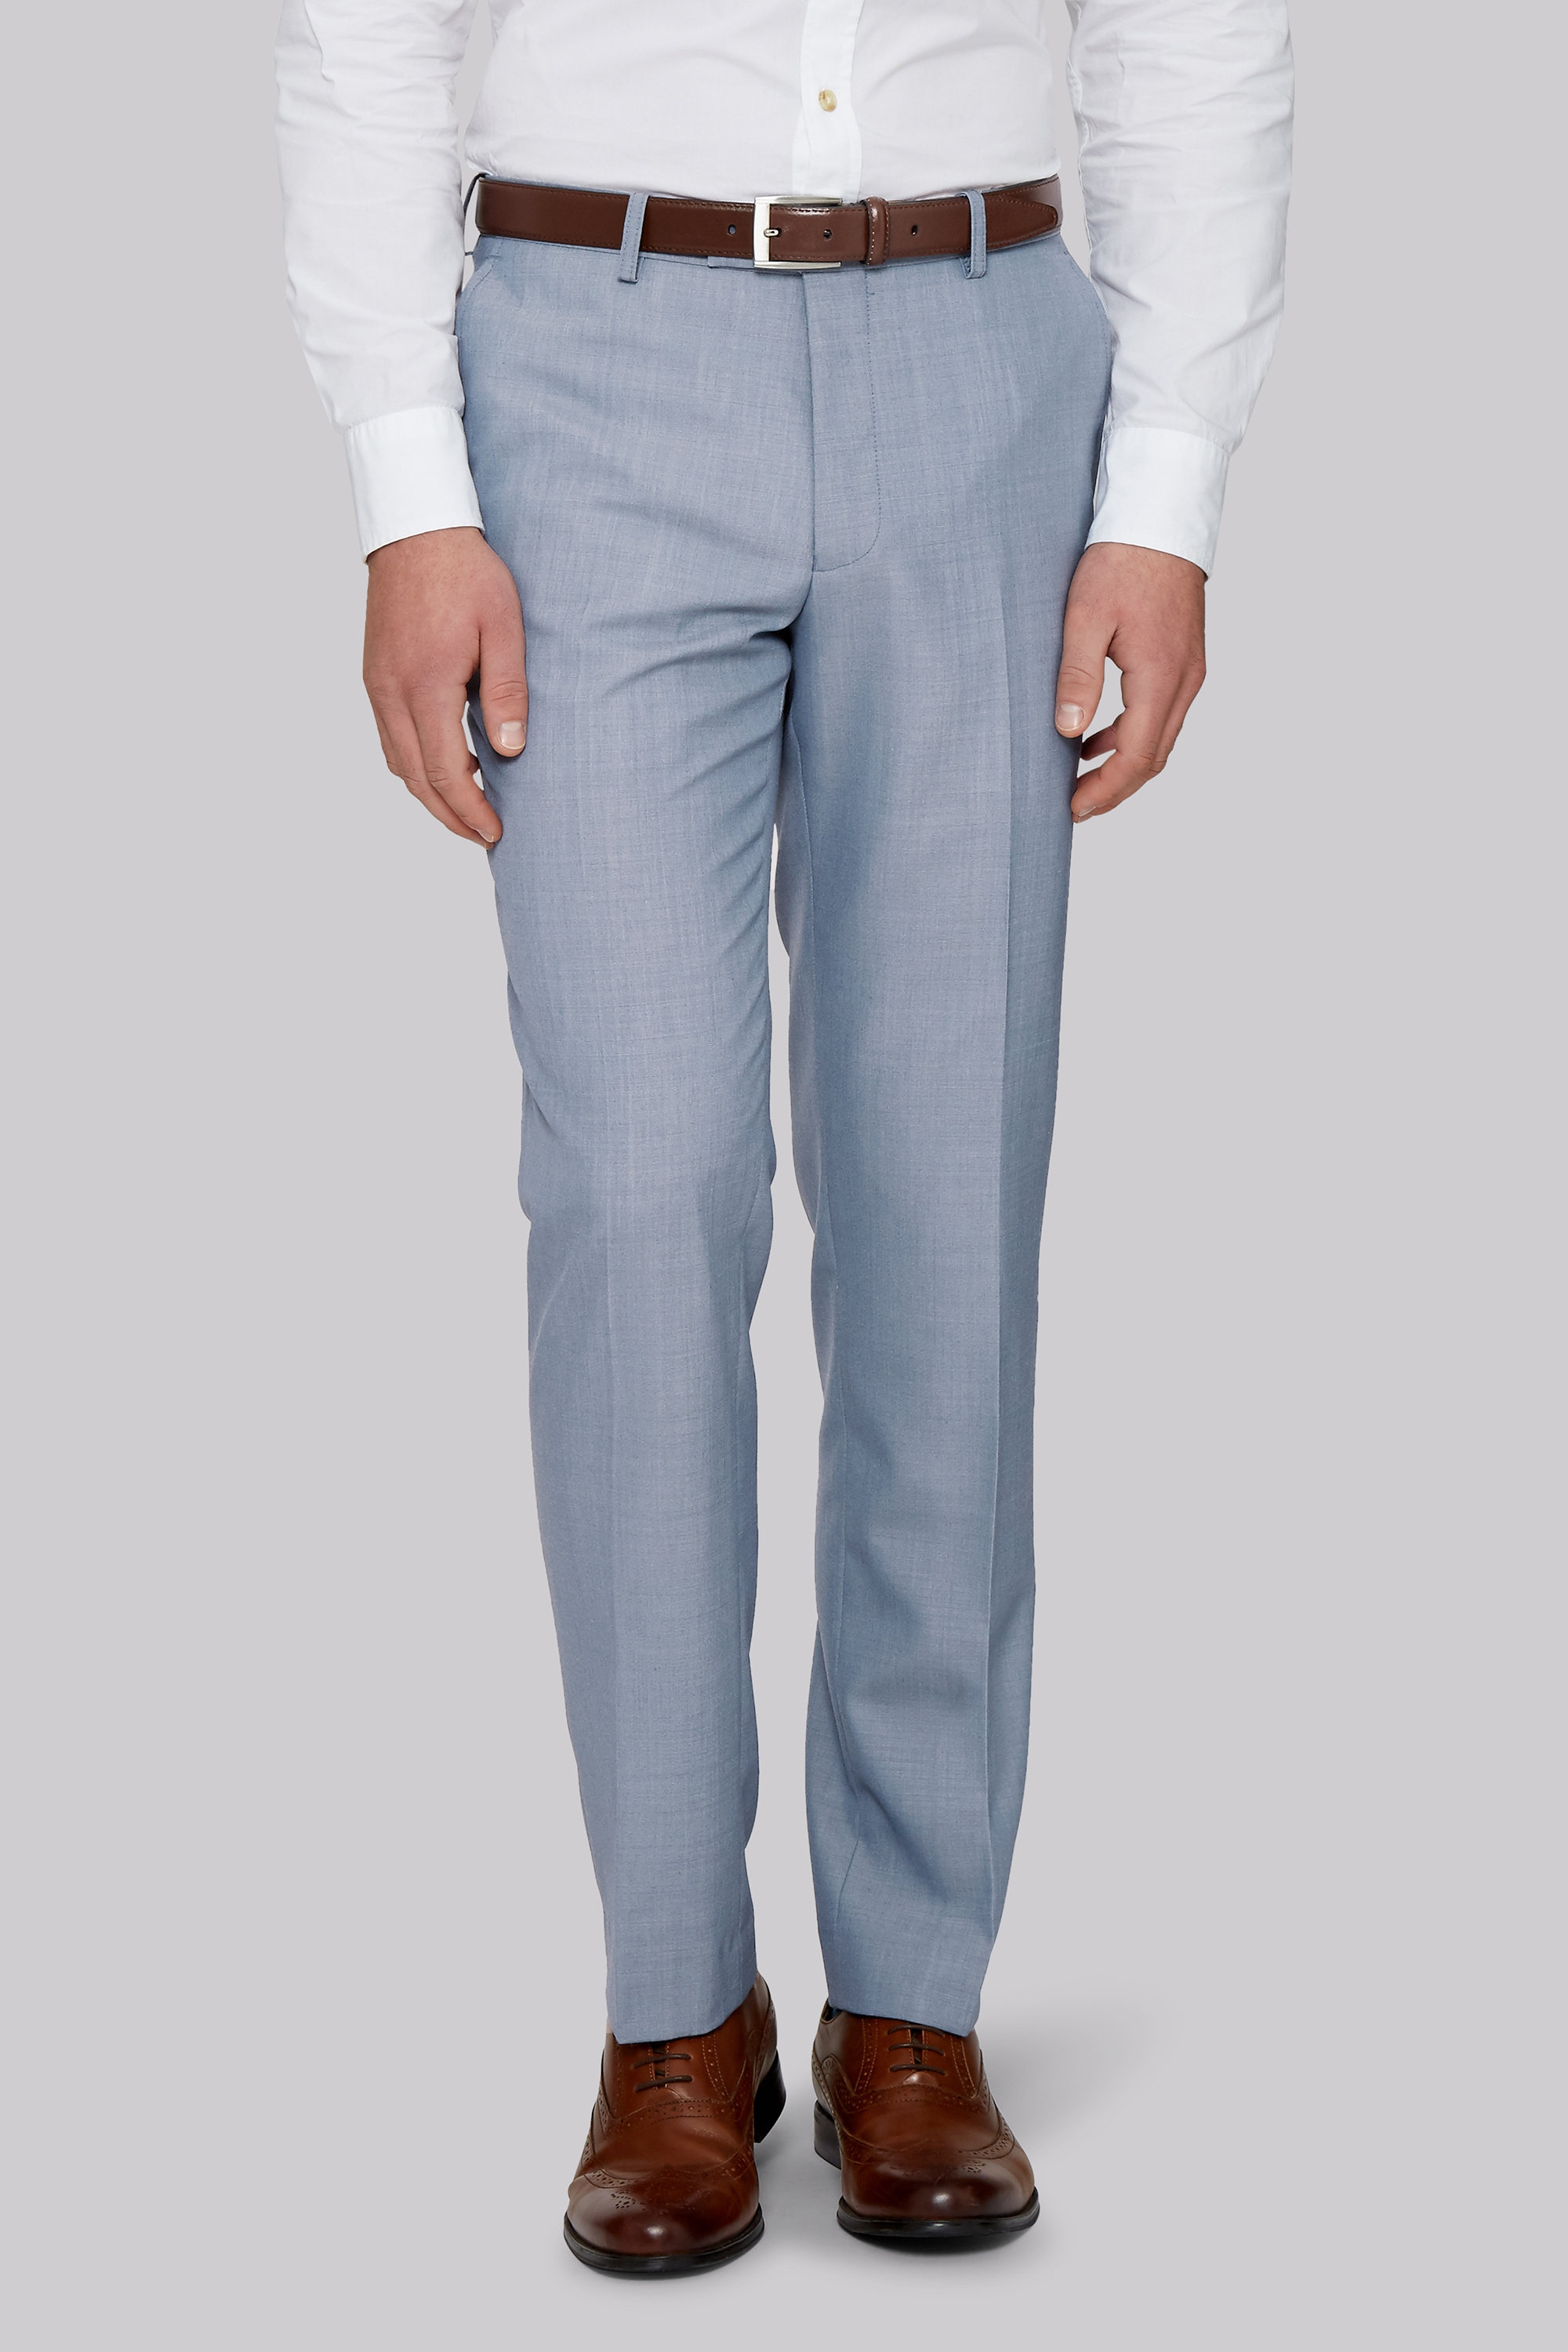 Moss Bros Moss 1851 Tailored Fit Ice Blue Trousers